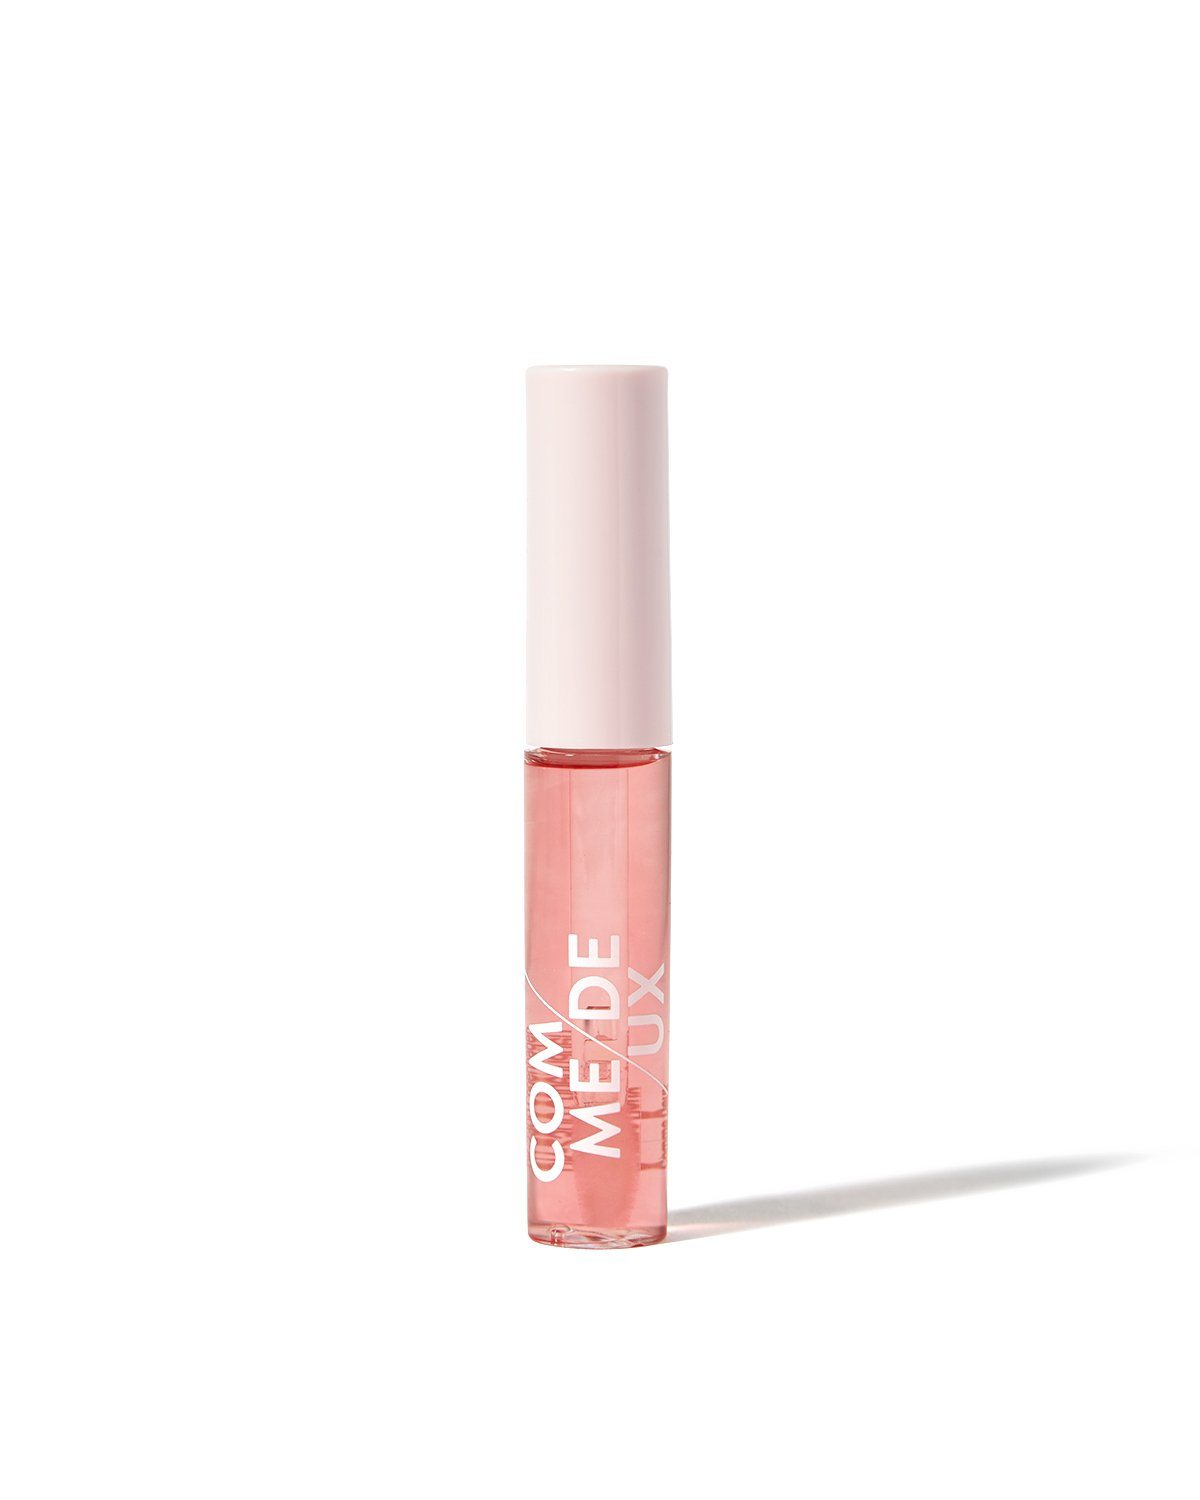 liplove lip love peach lip oil